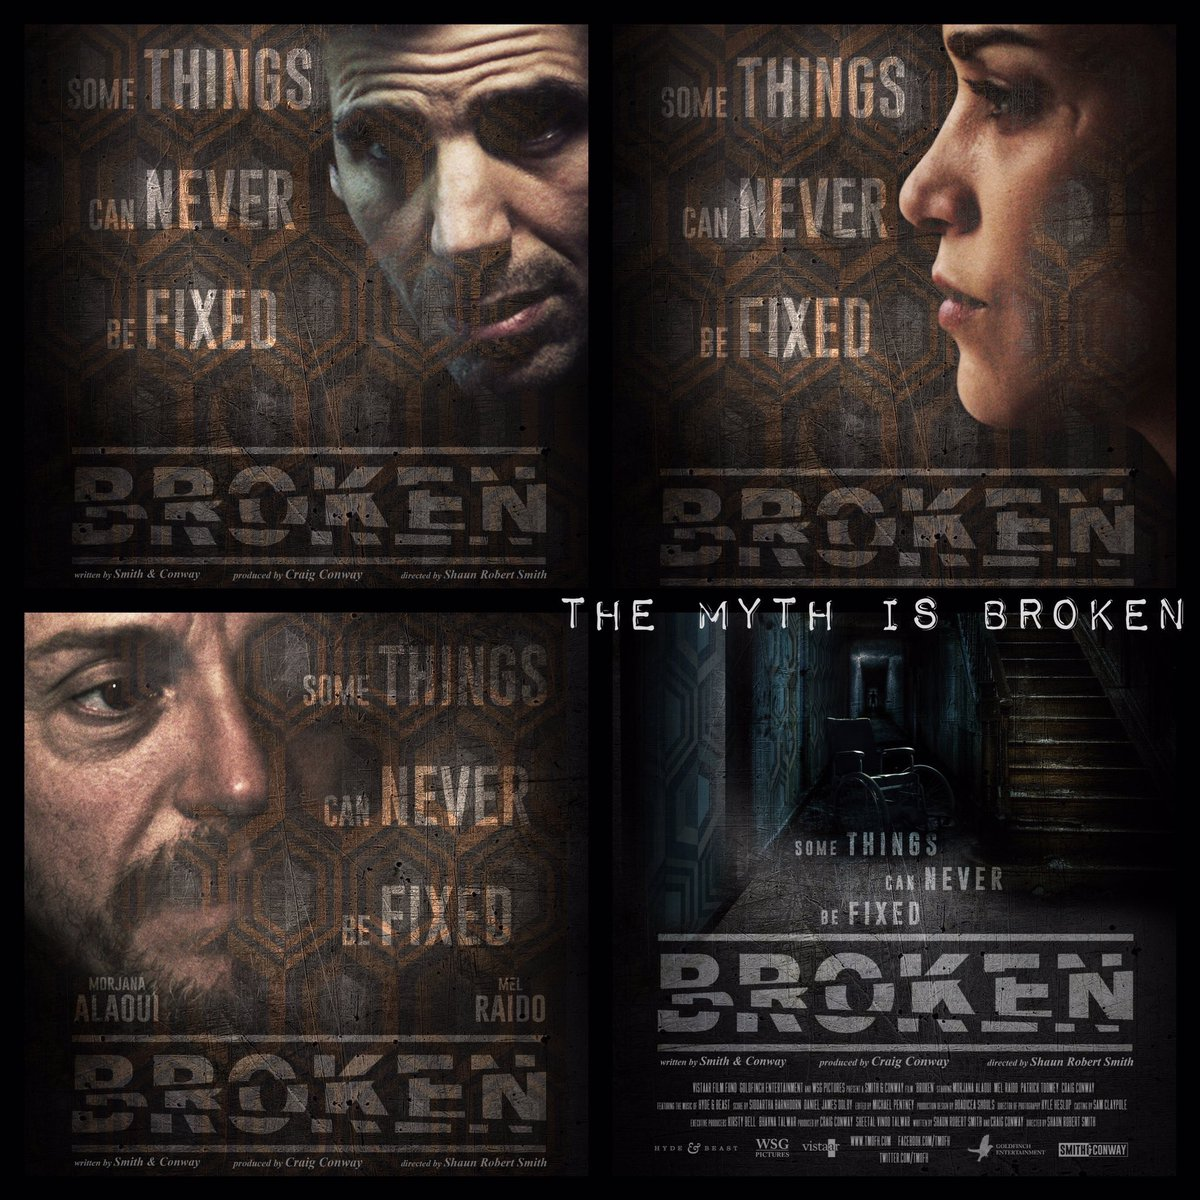 Very excited!!!!! @broknmovie @thecraigconway #supportindiefilm https://t.co/3Td1vyOGTa